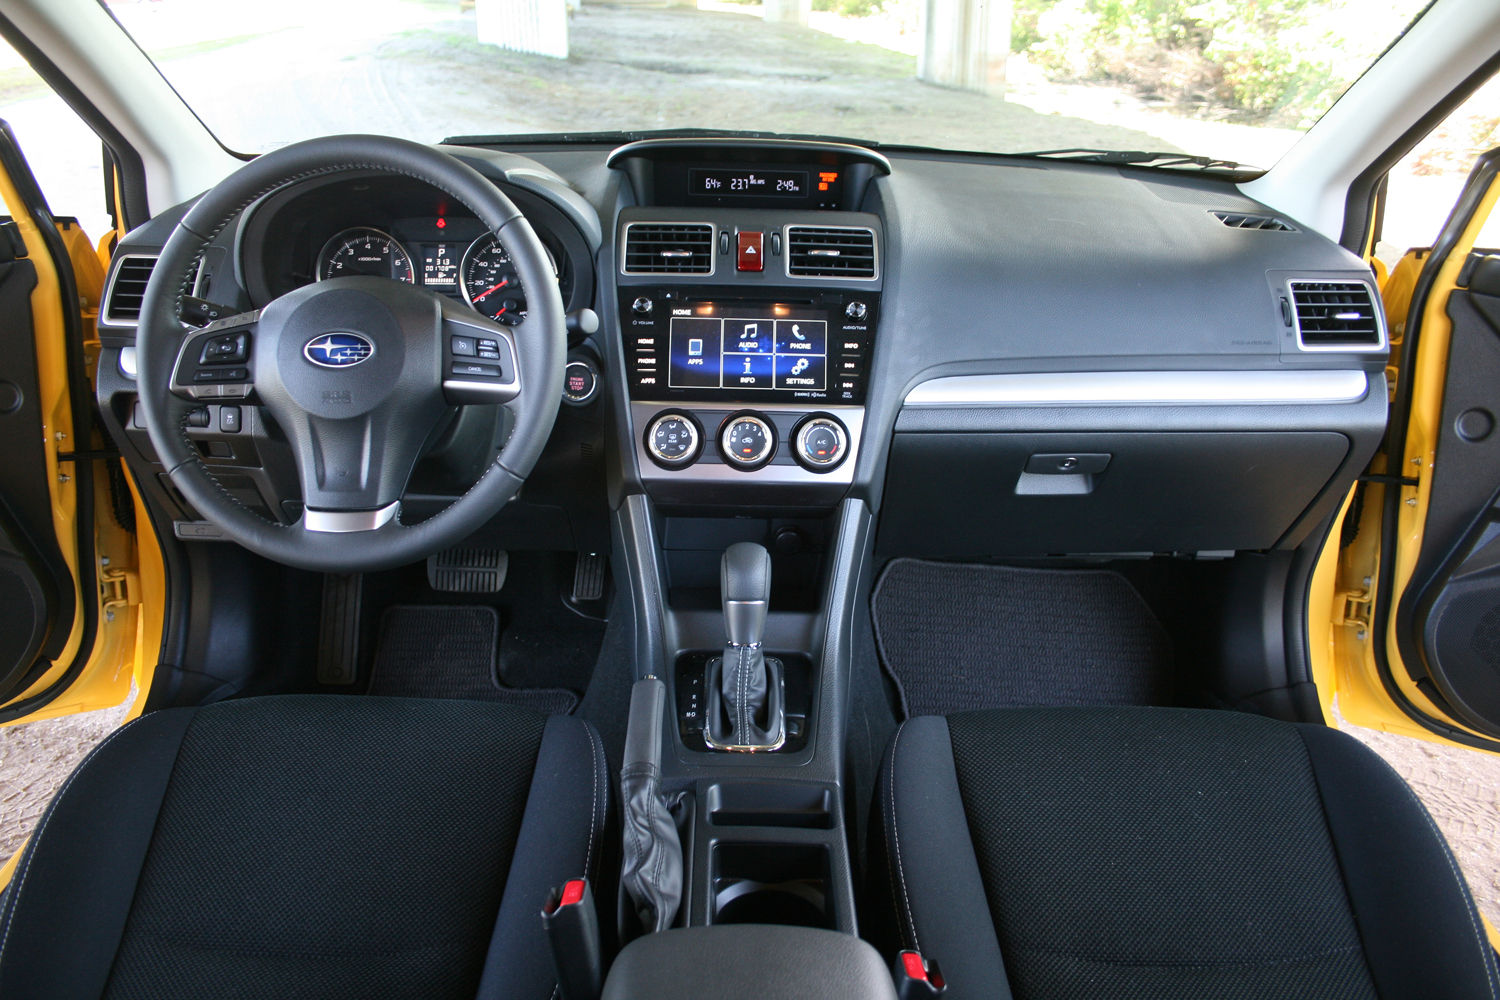 2015 subaru xv crosstrek - driven review - top speed